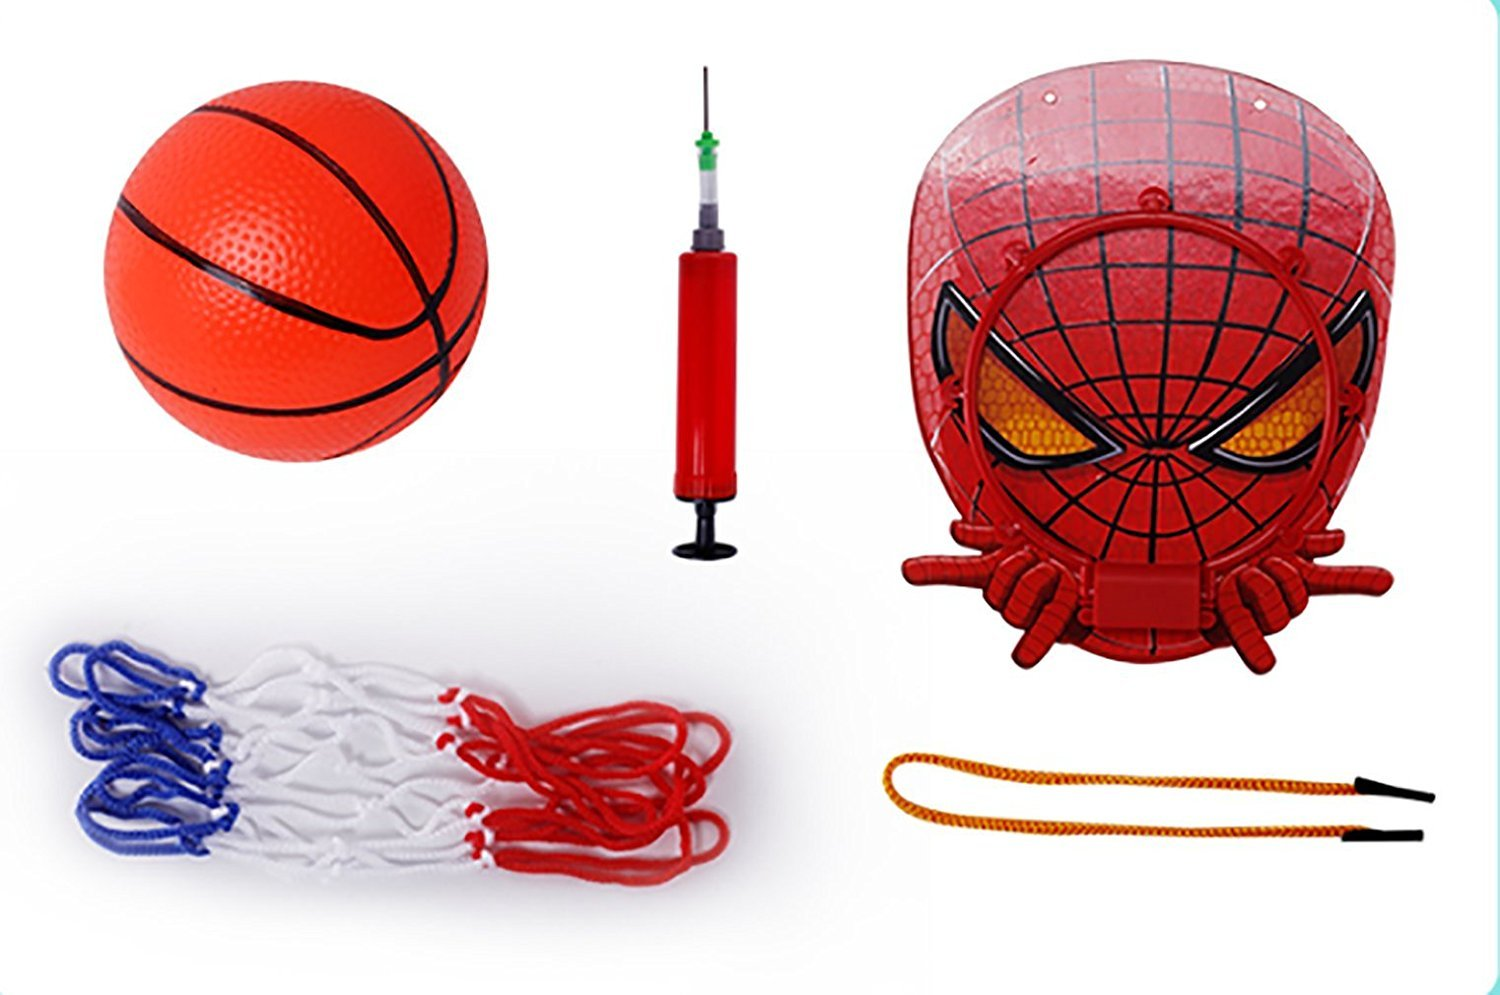 Lbsel Sports Training Ball Game with Ball and Pump Gifts for Baby Kids Children Boys Girls,Hanging Mini Basketball Netball Hoop Set Toys Indoor Outdoor Basketball Box Board Backboard